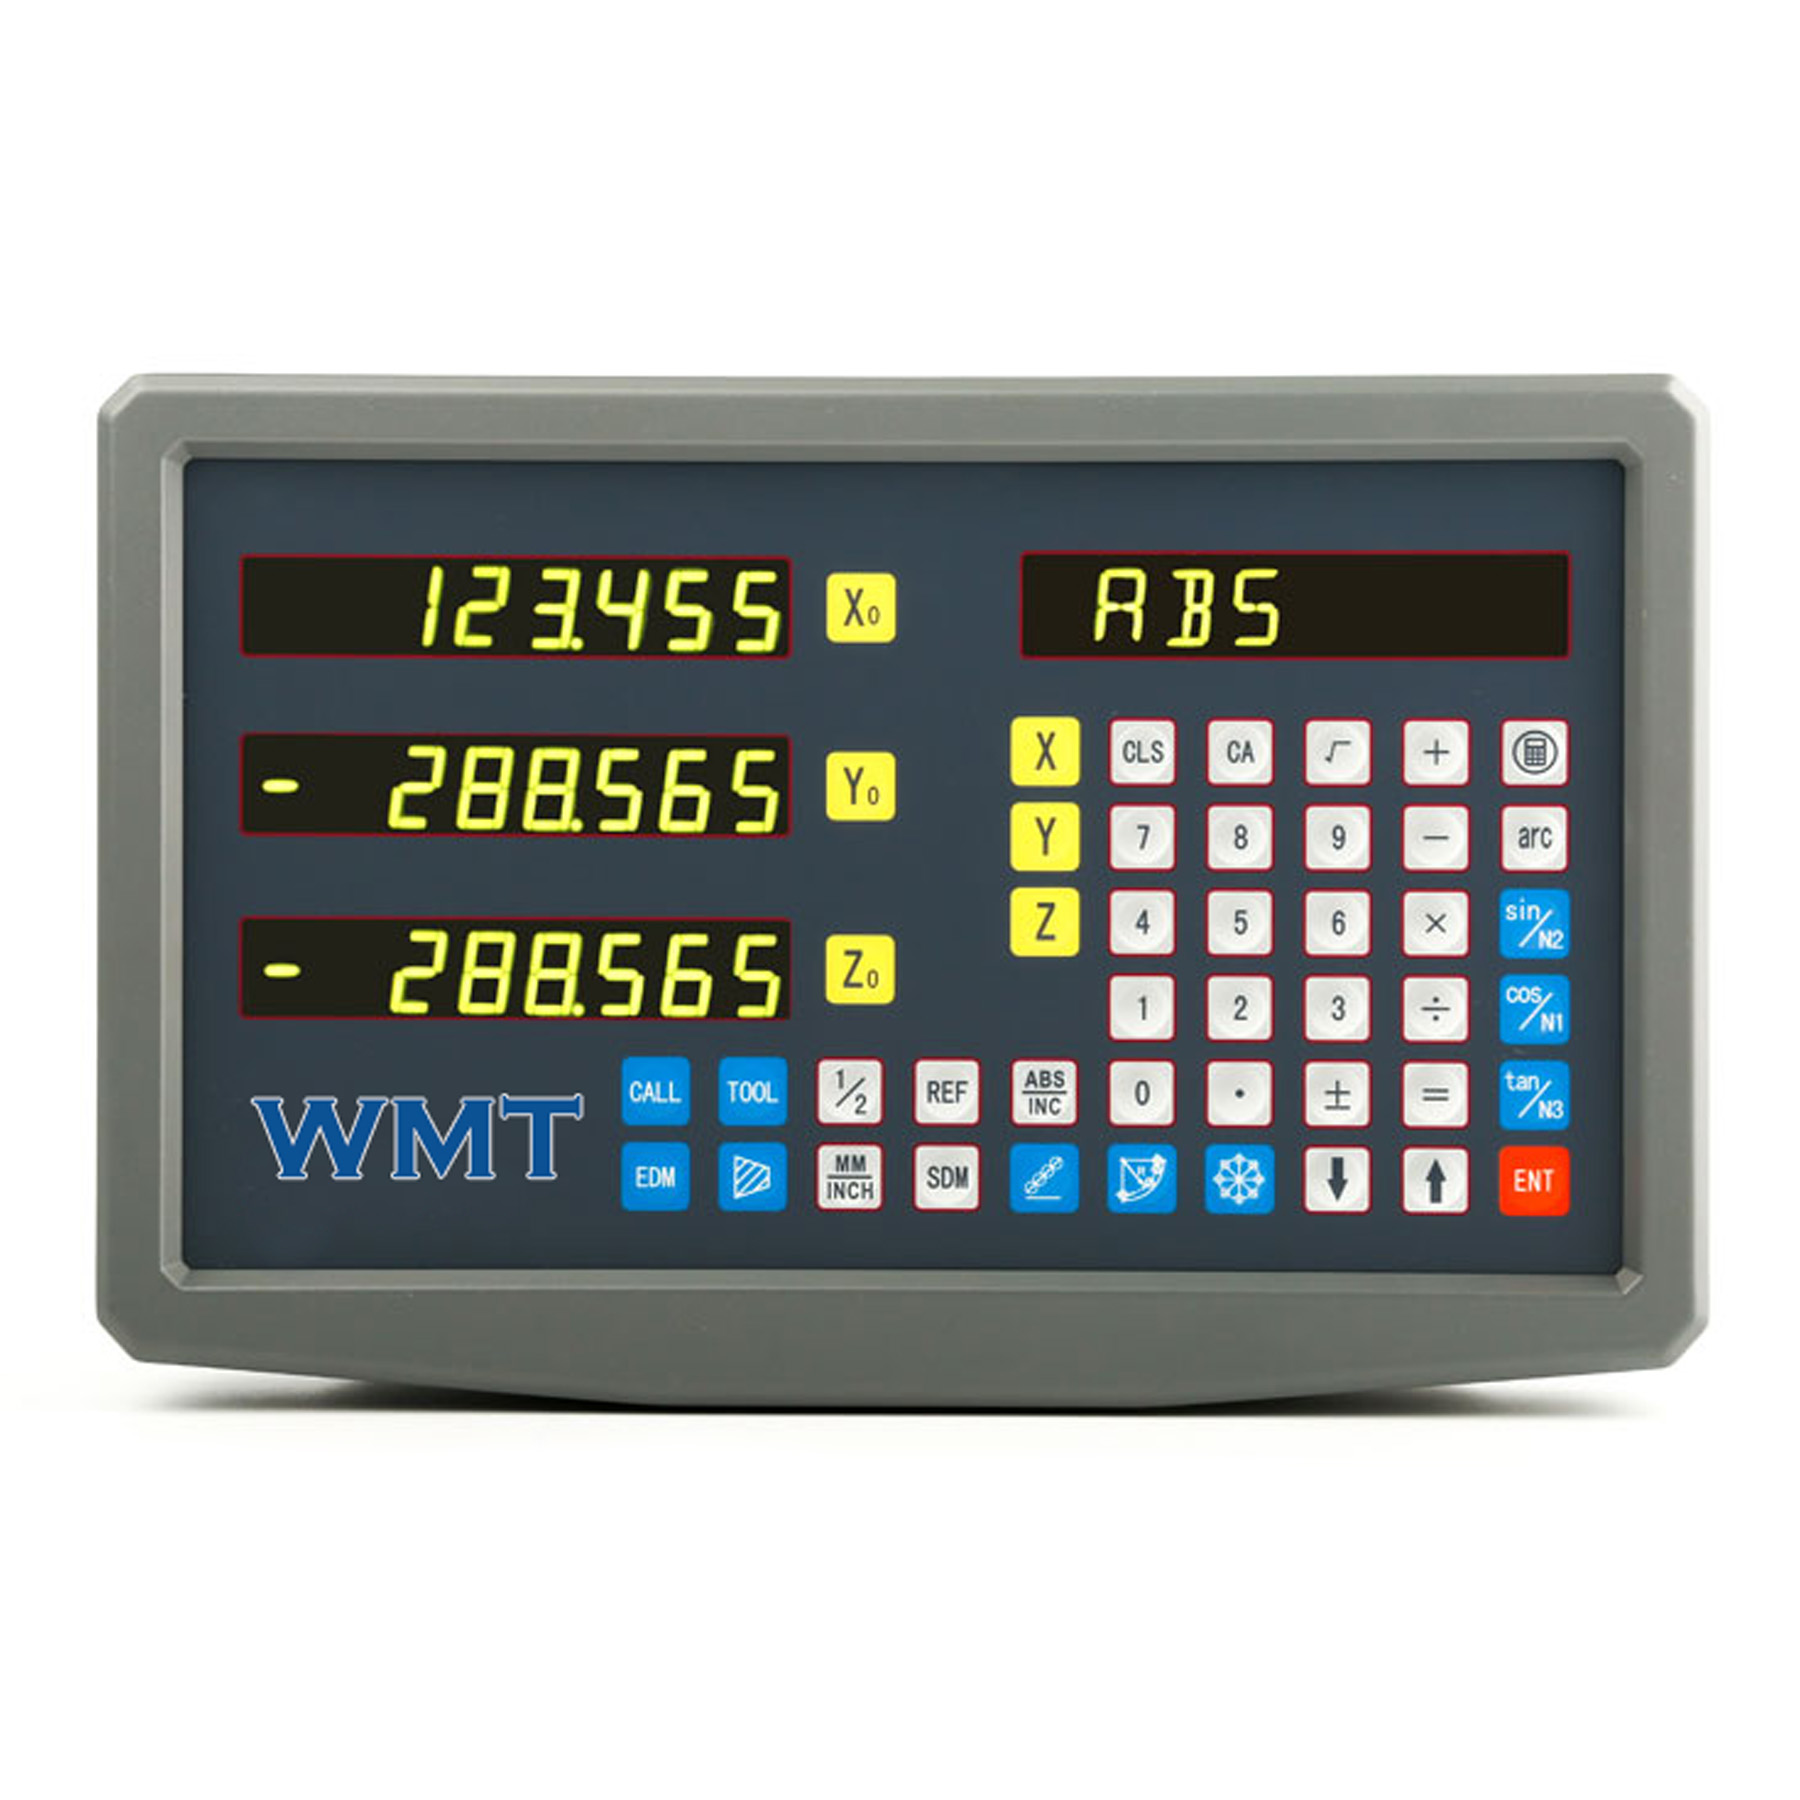 The WMT Digital Readout for sale at Worldwide Machine Tool